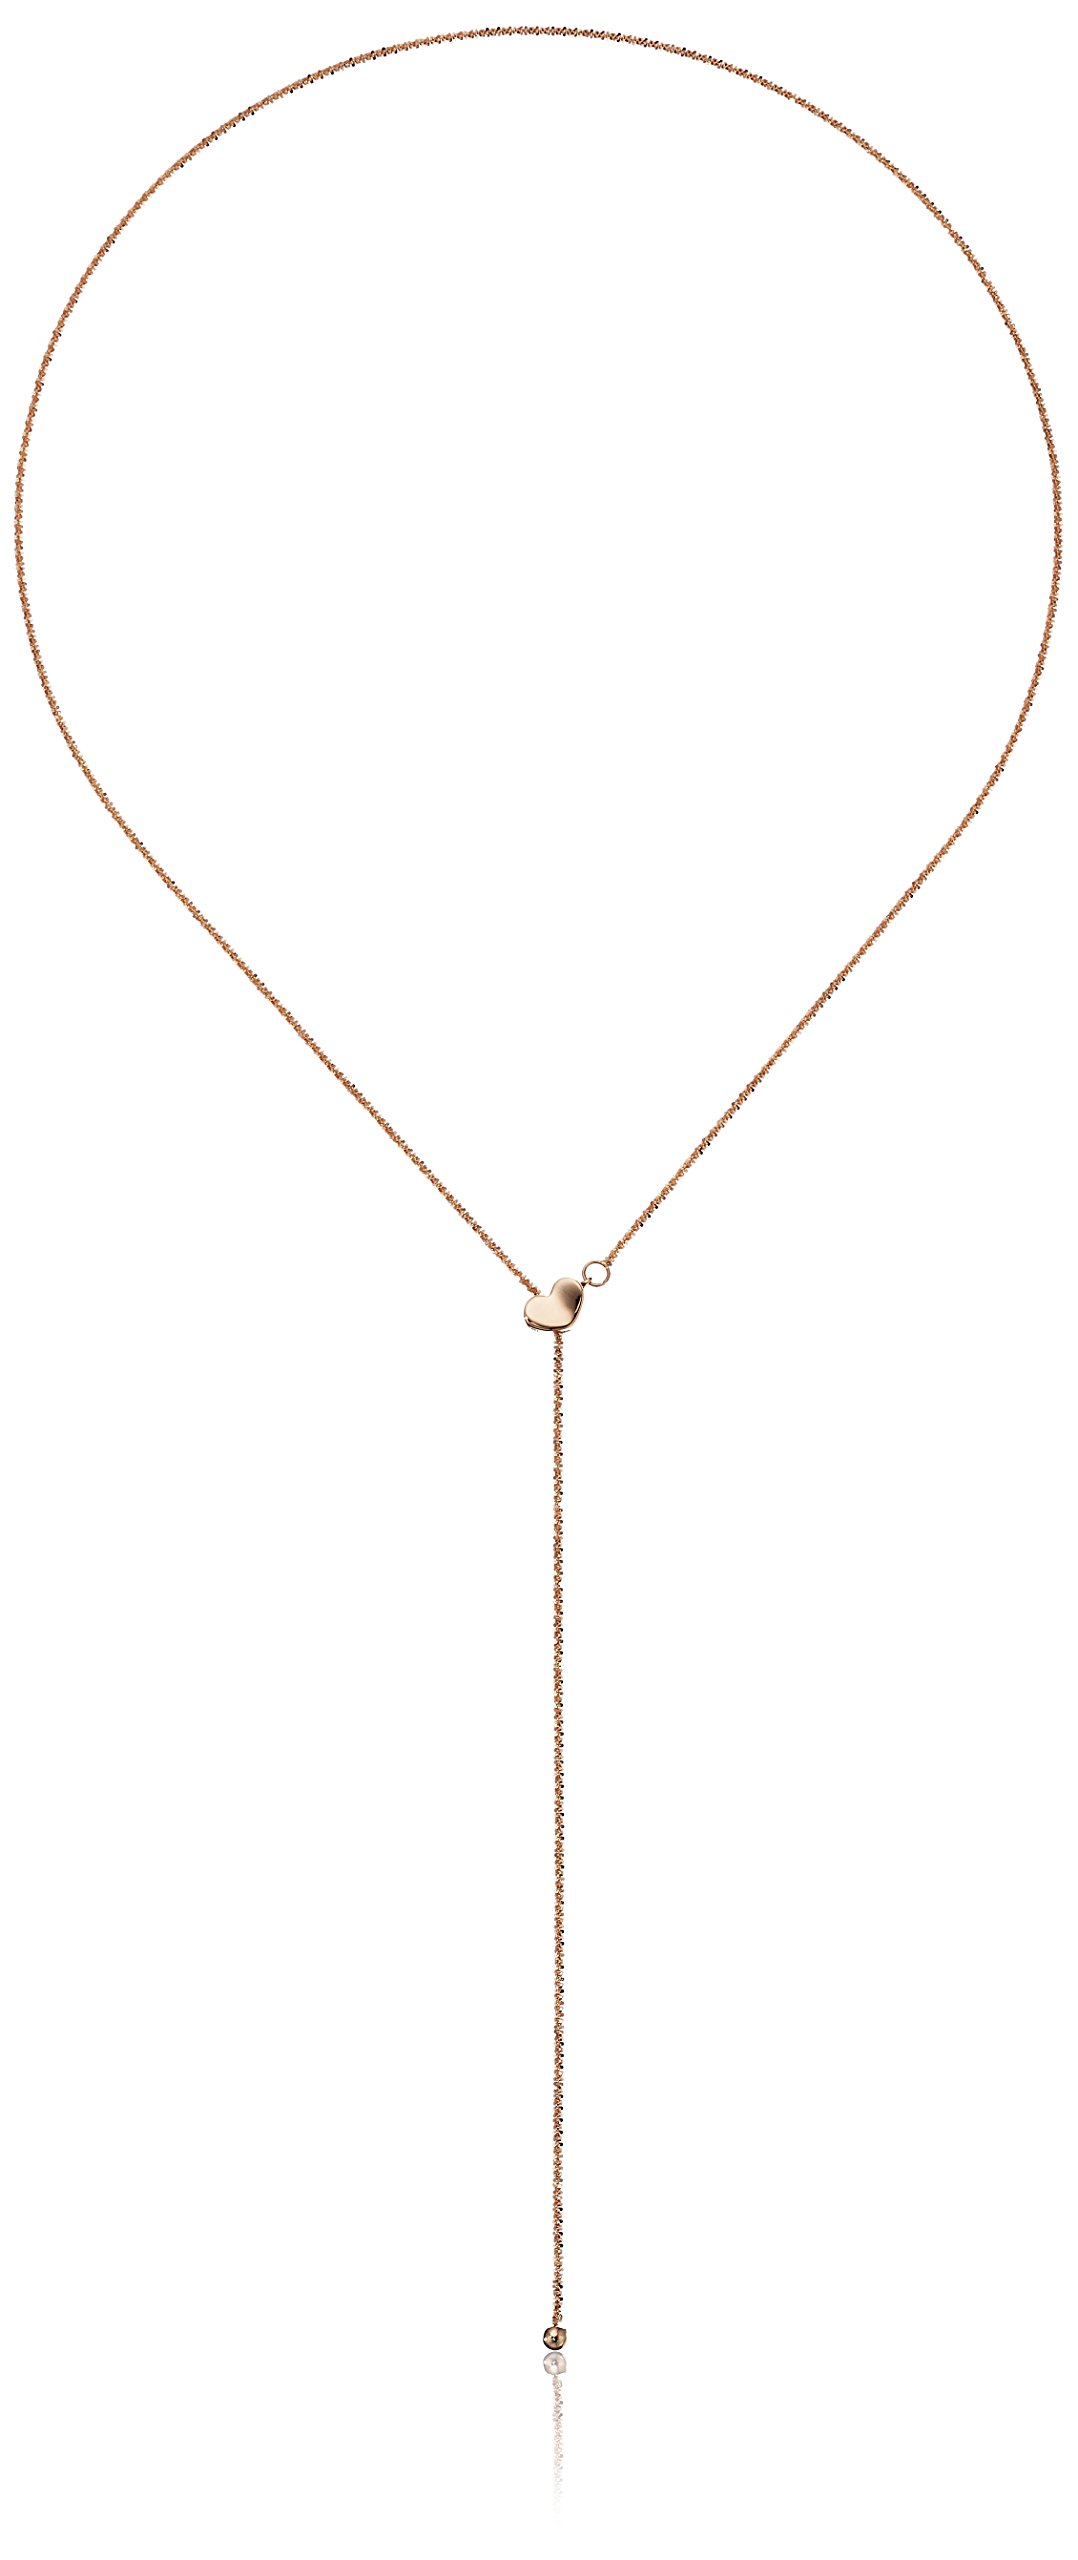 14k Rose Gold Heart Adjustable Lariat Sparkle Chain Y-Shaped Necklace, 22''